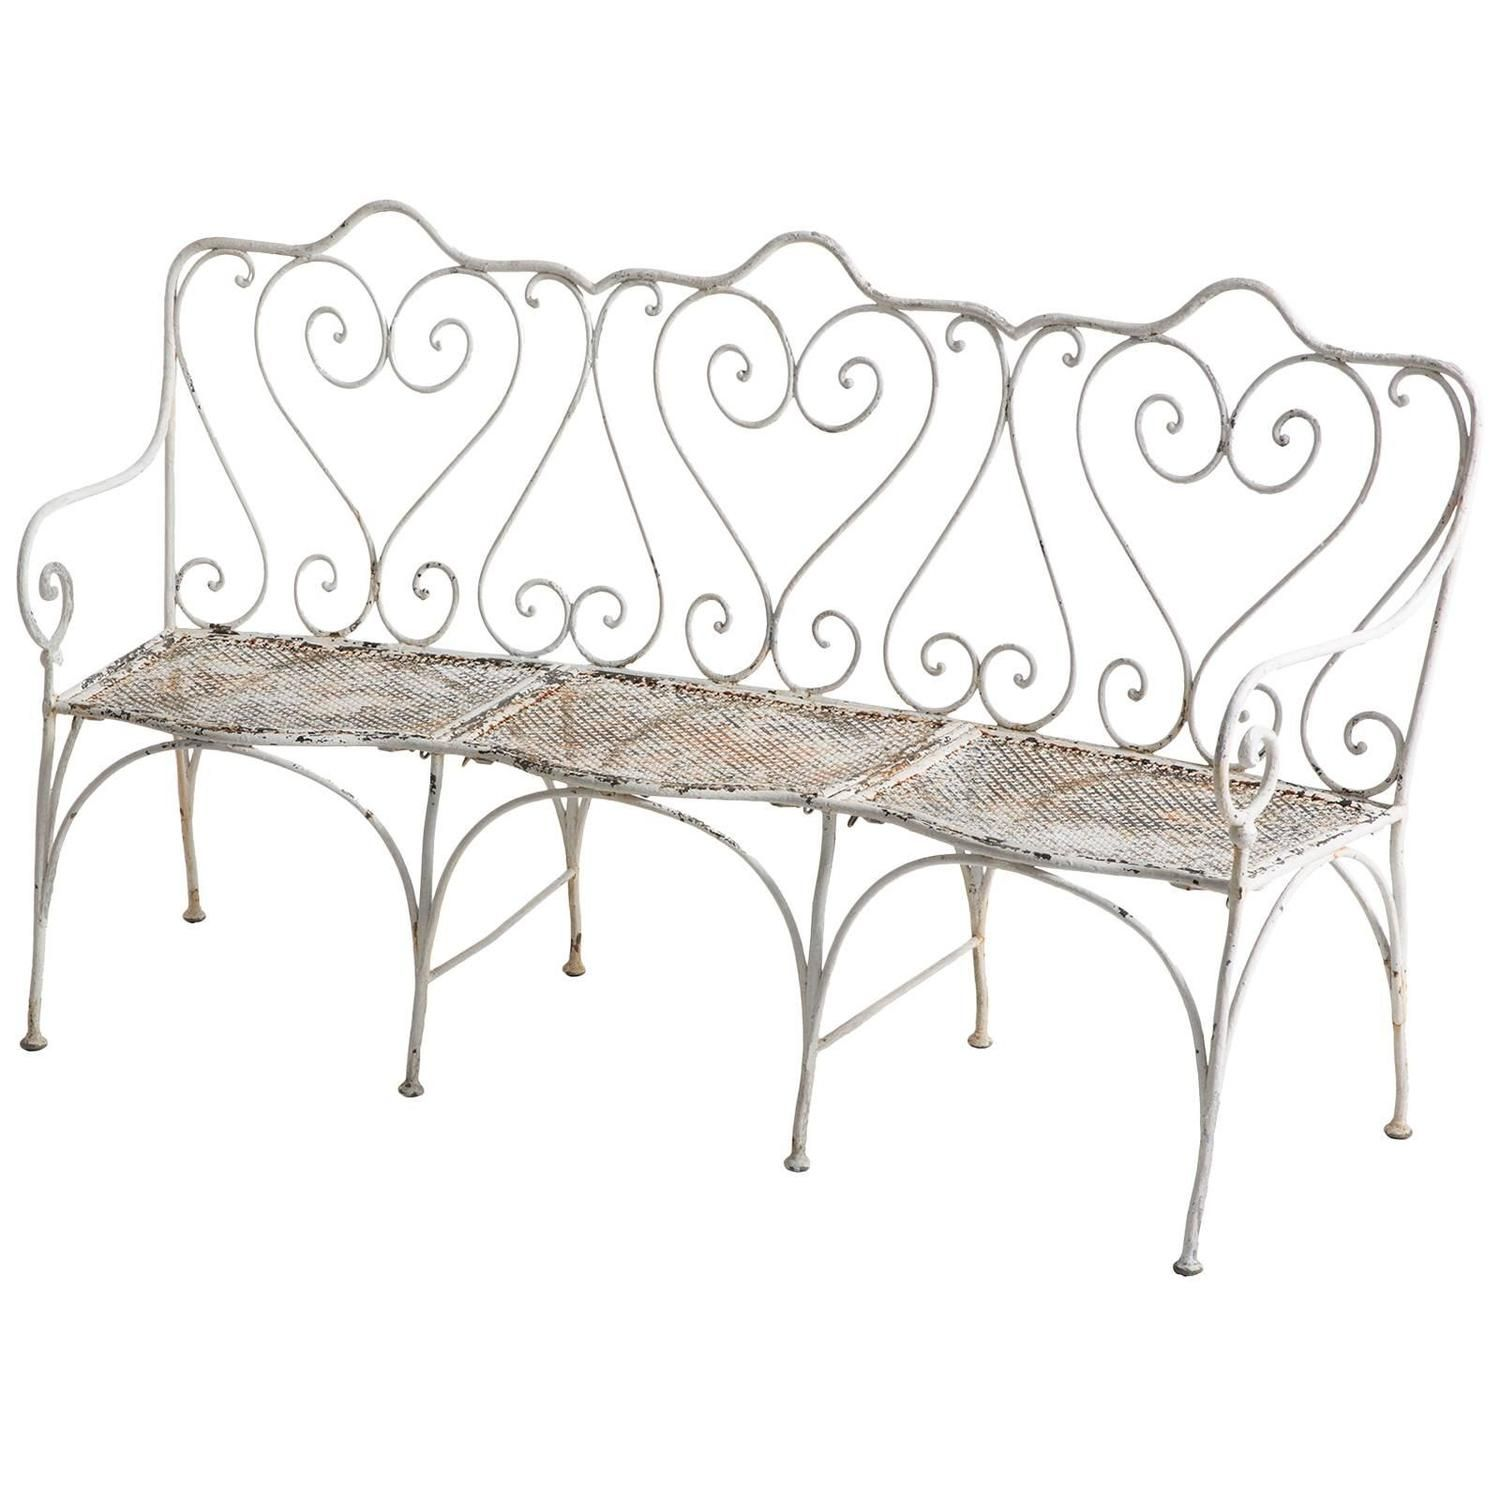 tag furniture iron advanced wrought patio bench luxury com environments tampa yorkshire garden design archives